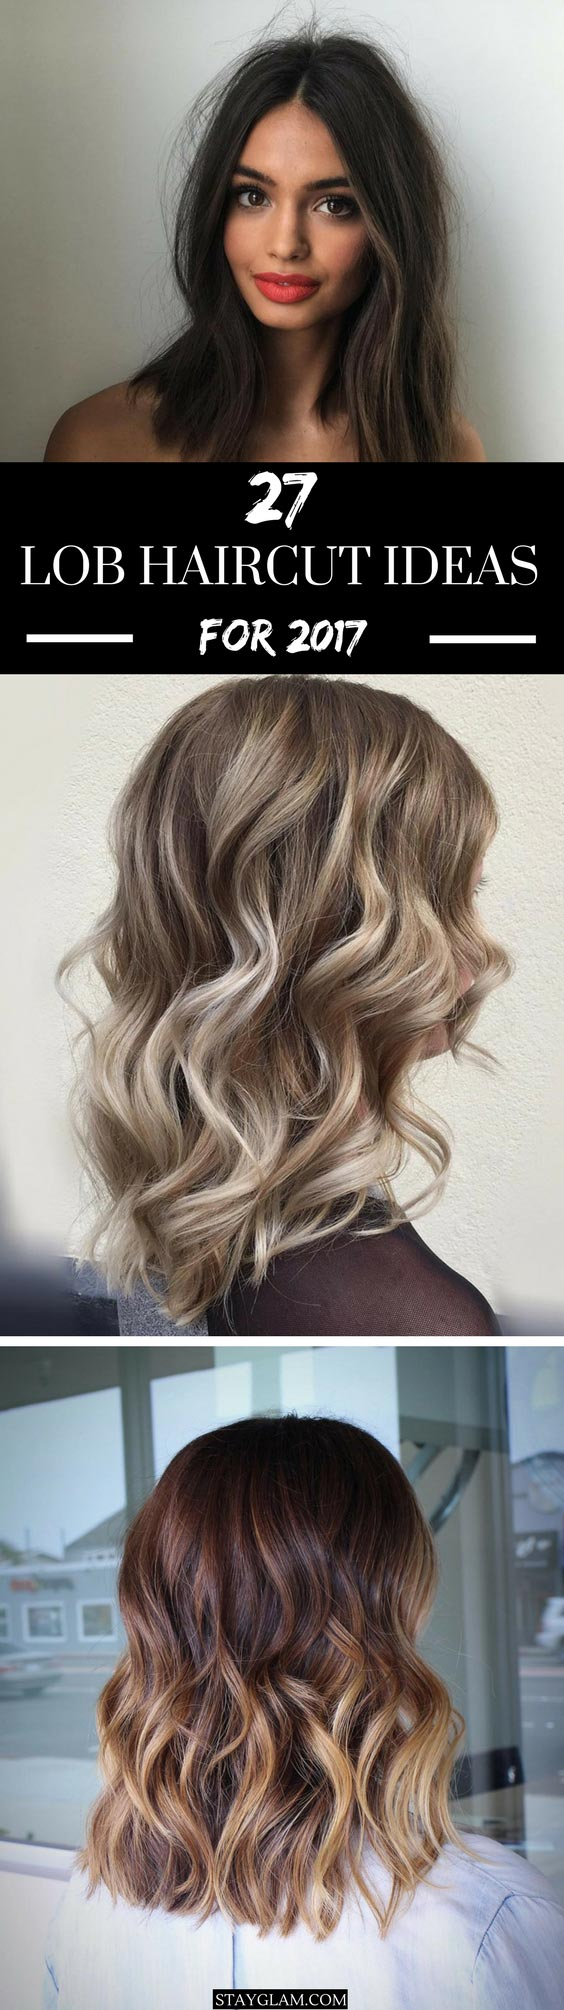 Long Bob Lob Haircut Ideas for 2017